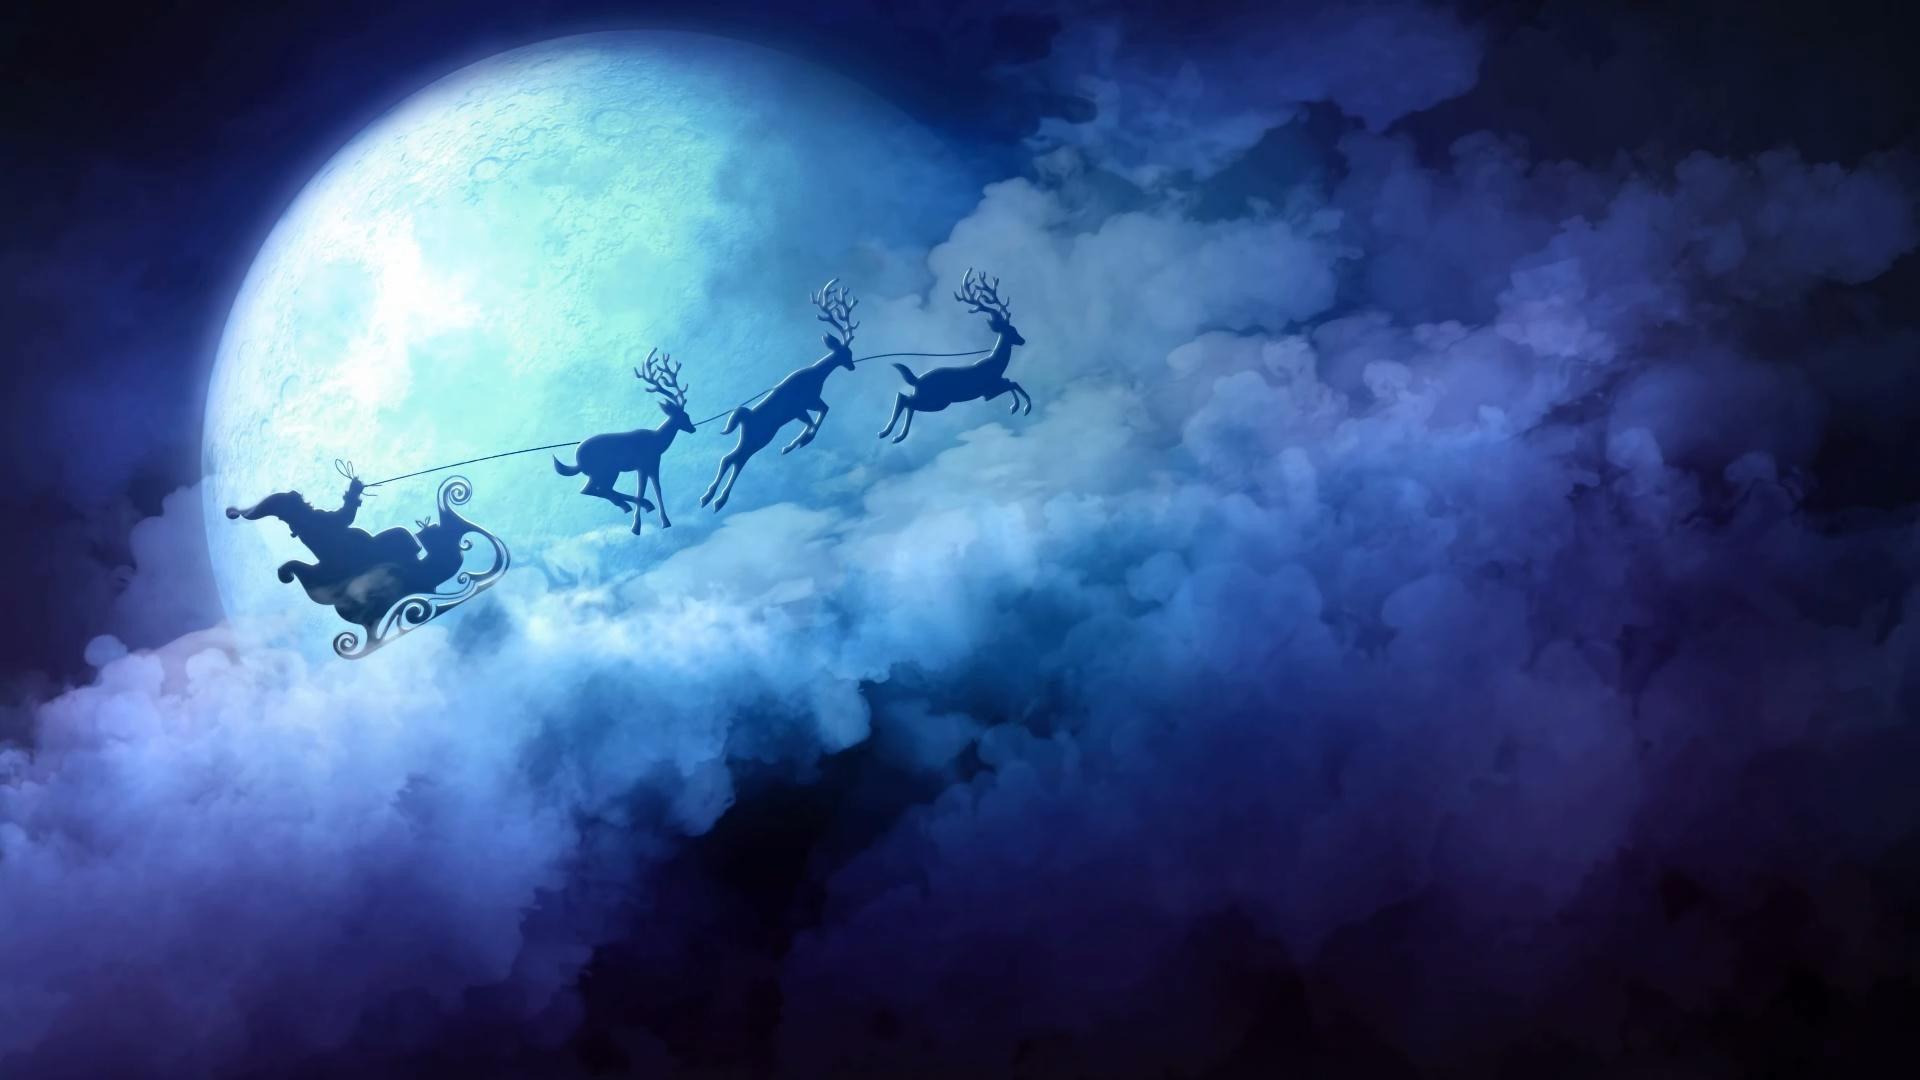 1920x1080 5 Best Holiday Animated Wallpapers for your Desktop